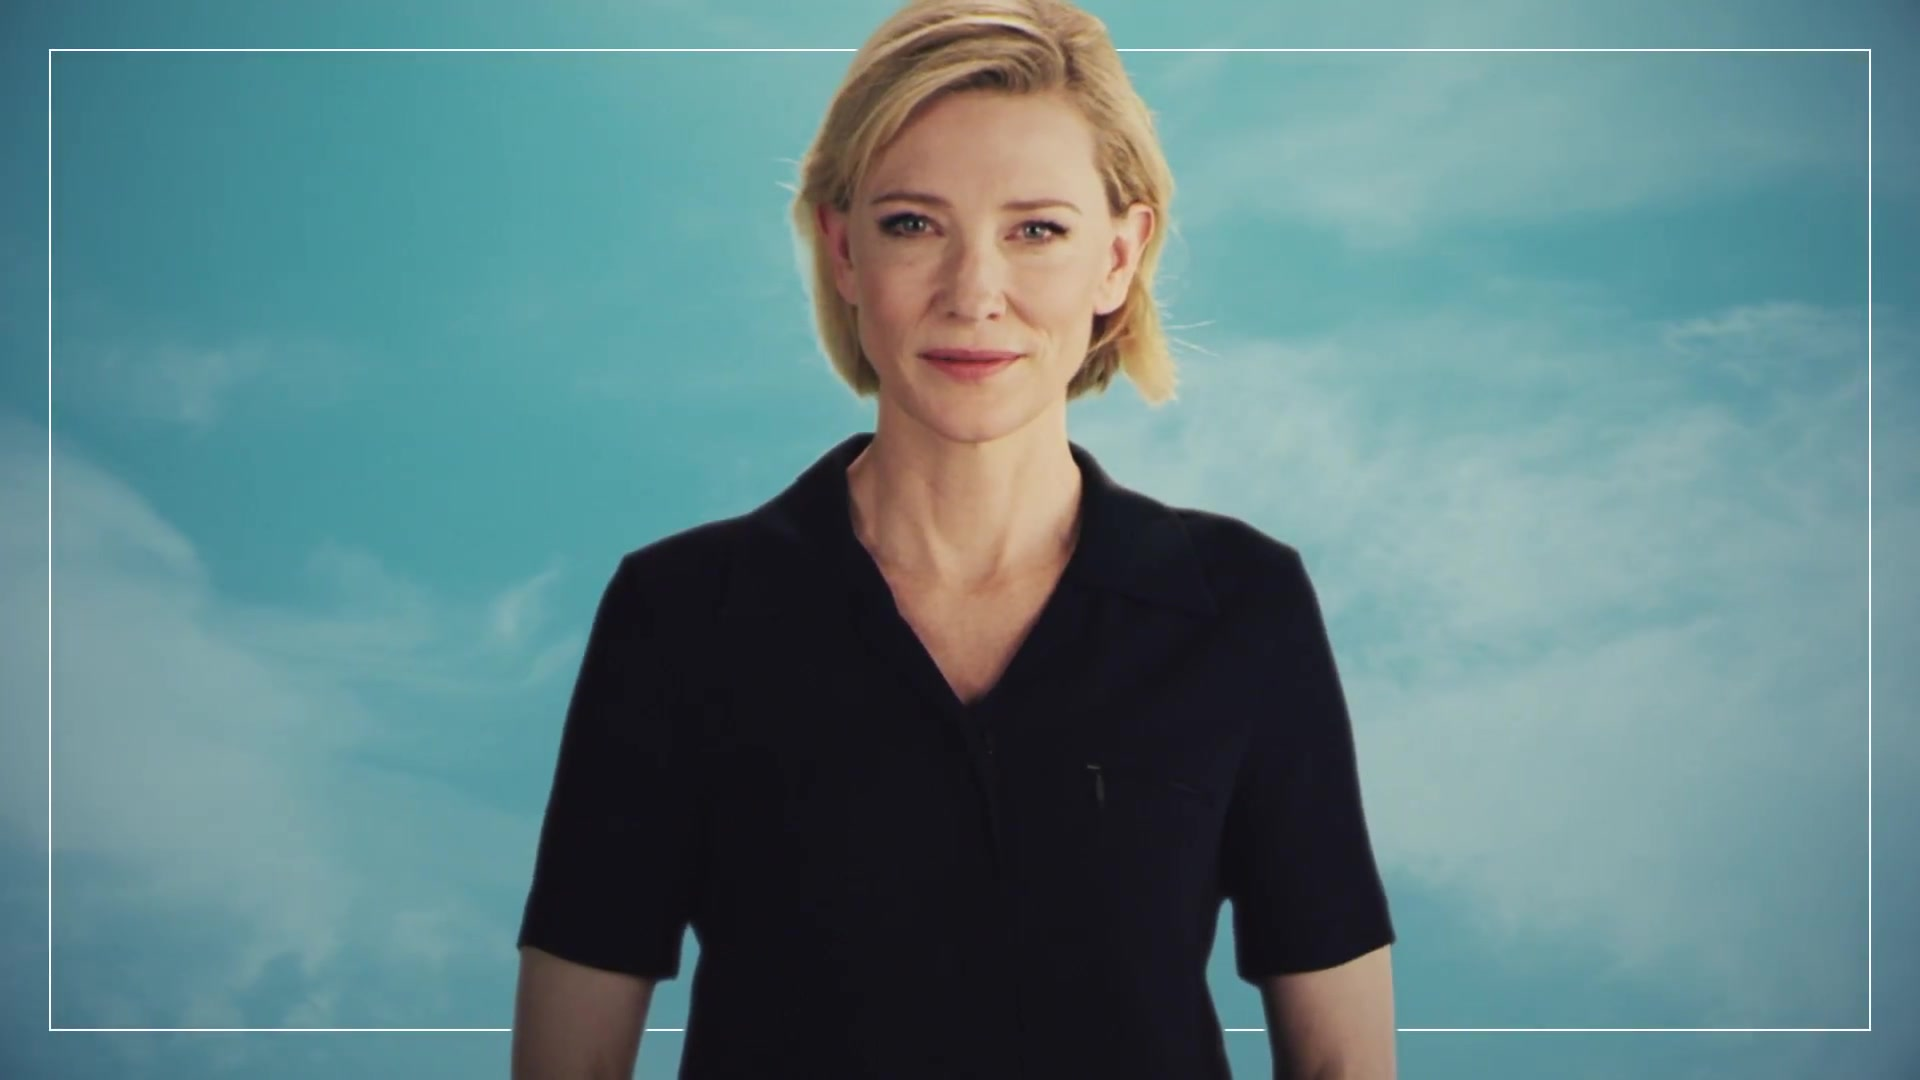 [New Video] A Motivational Message from Thor: Ragnarok's Cate Blanchett